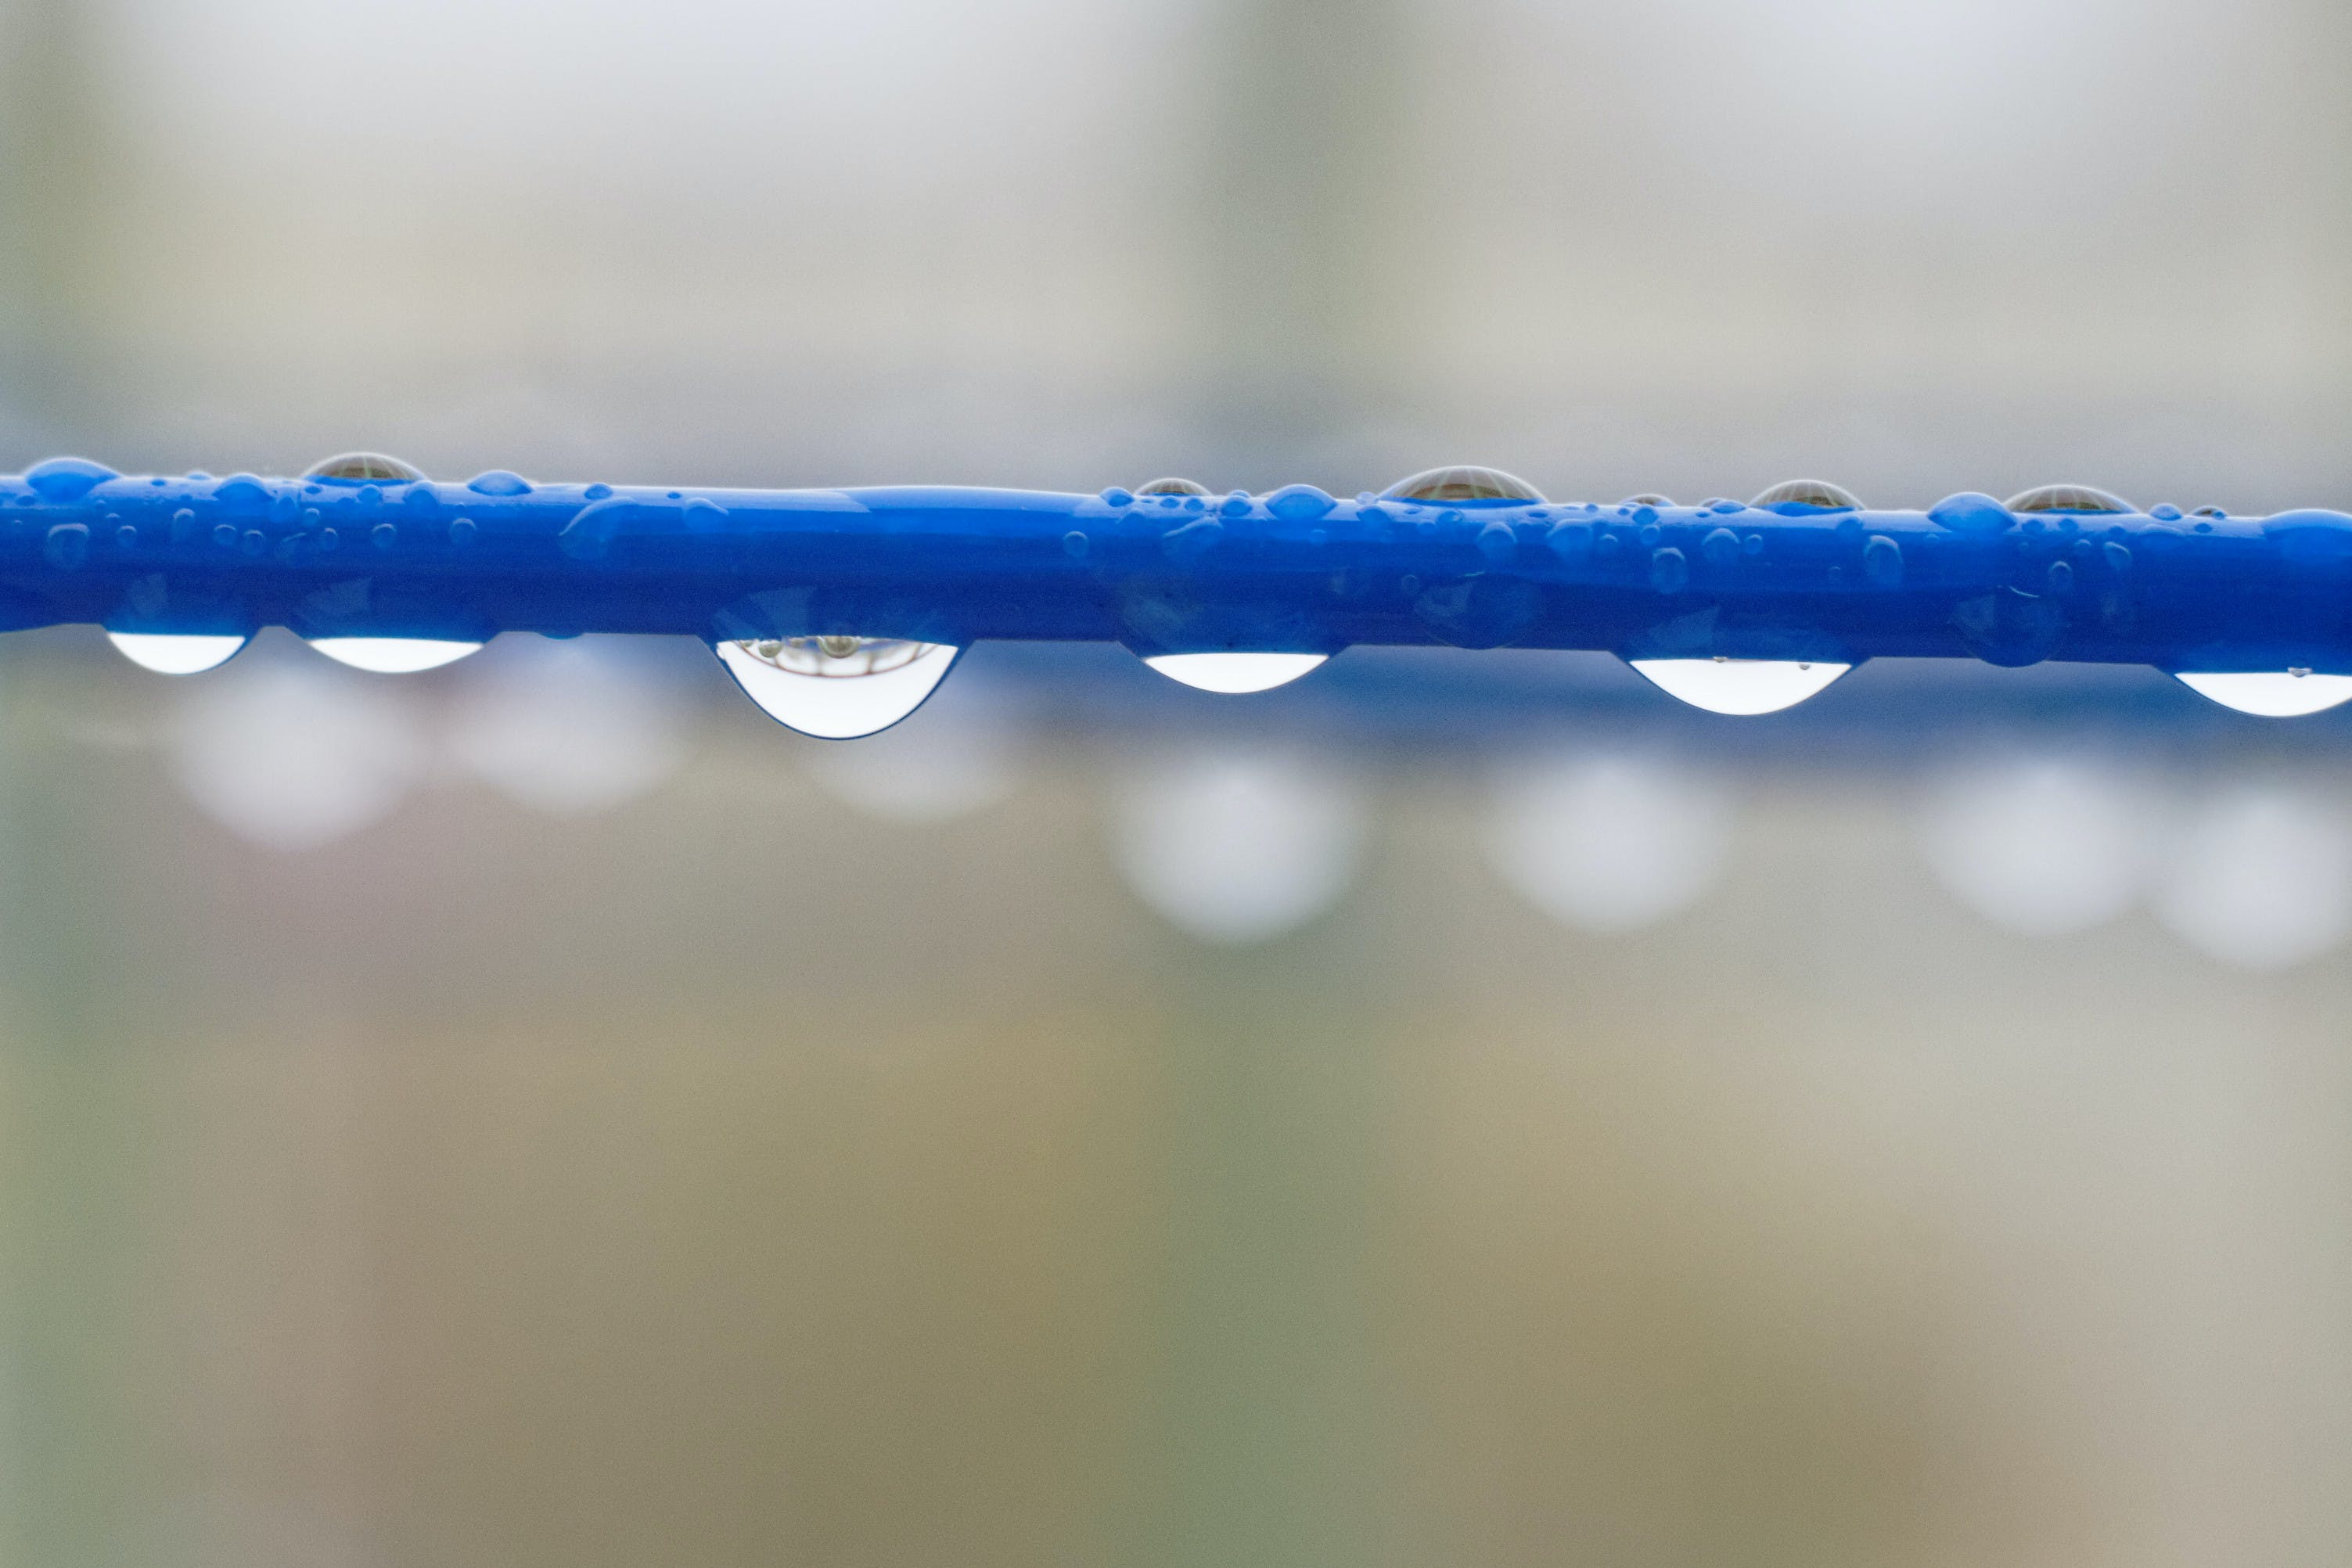 Free stock photo of water, droplets, theme water